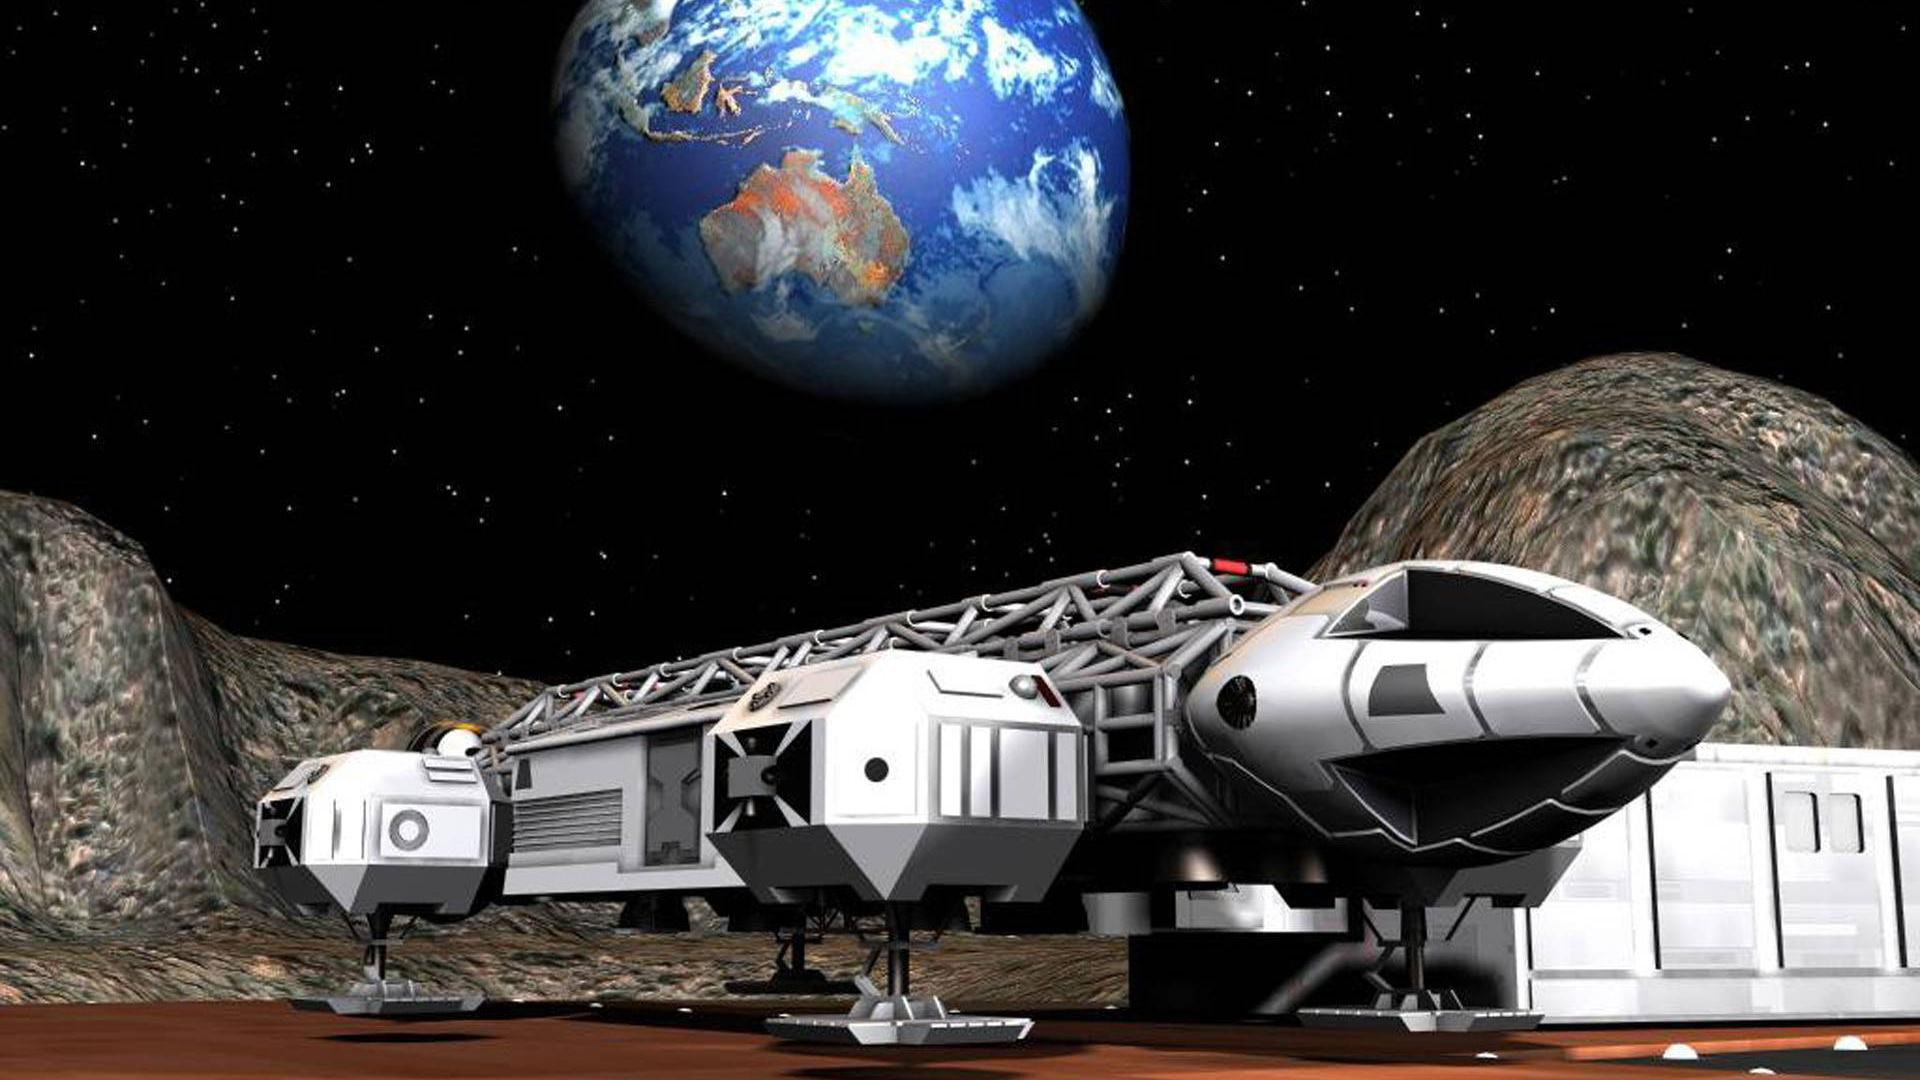 space fiction earth spaceships space 1999 wallpaper HQ WALLPAPER 1920x1080